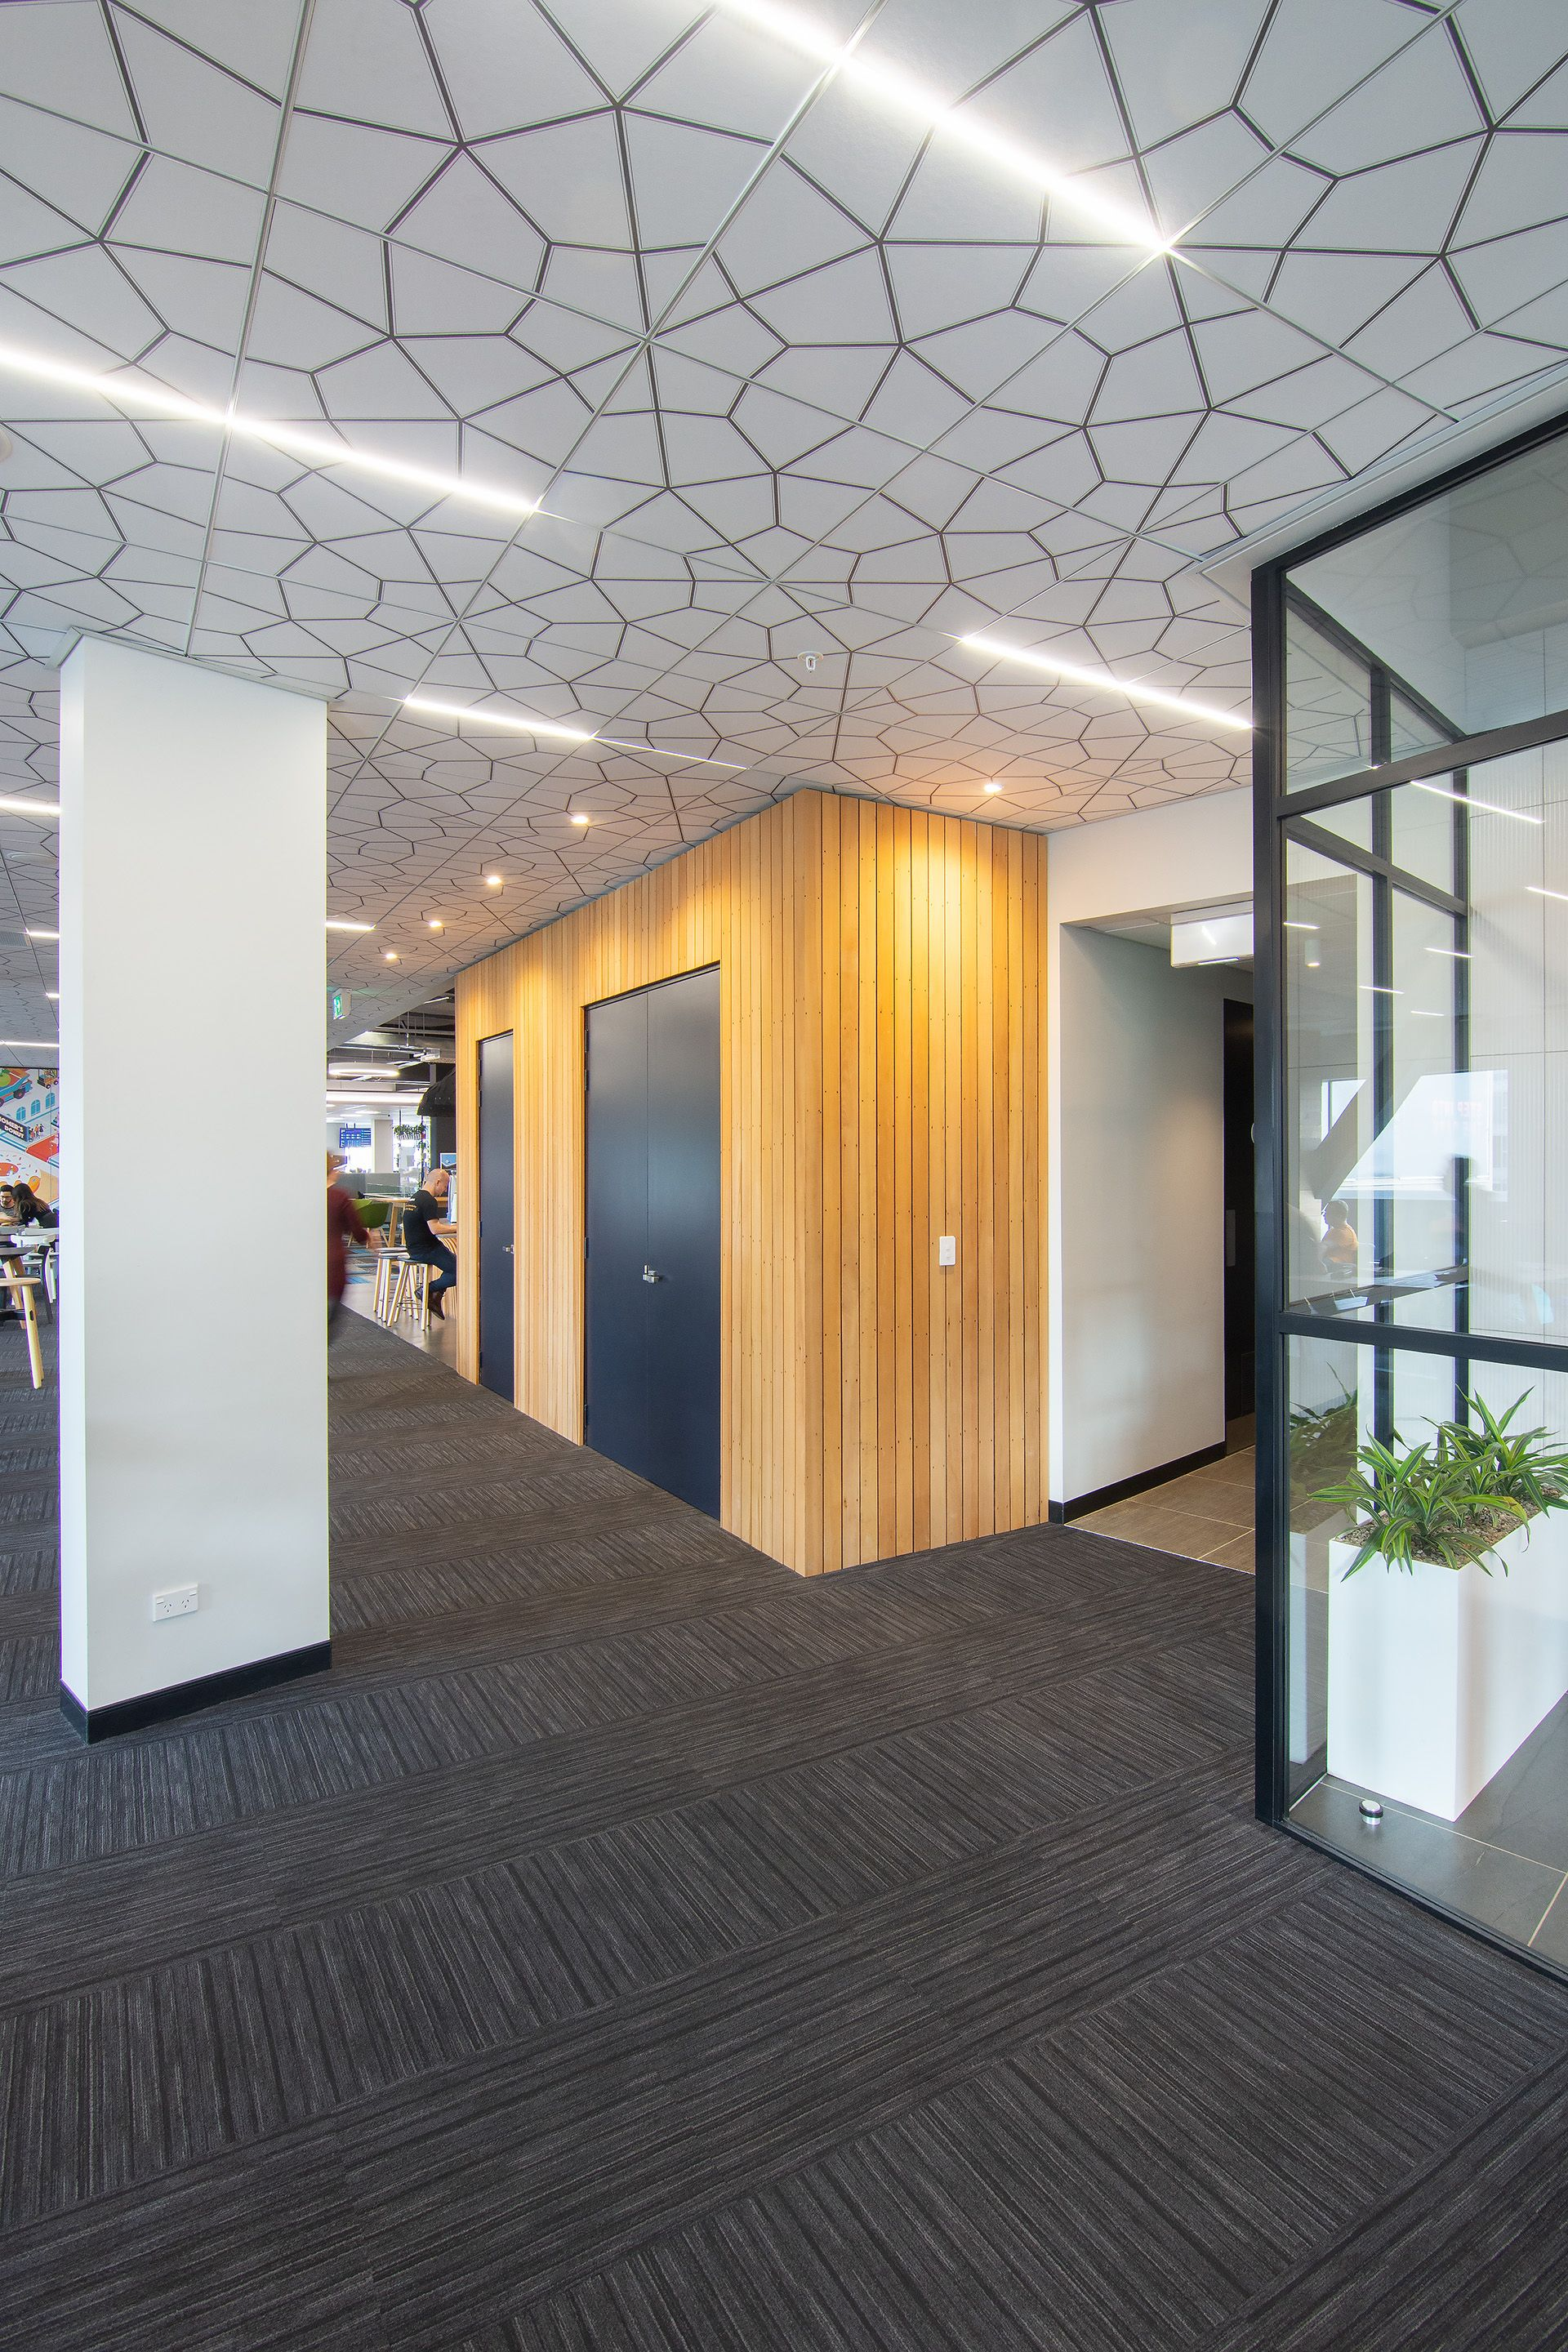 Owa Oriental Mineral Fibre Ceiling Tiles With Integrated